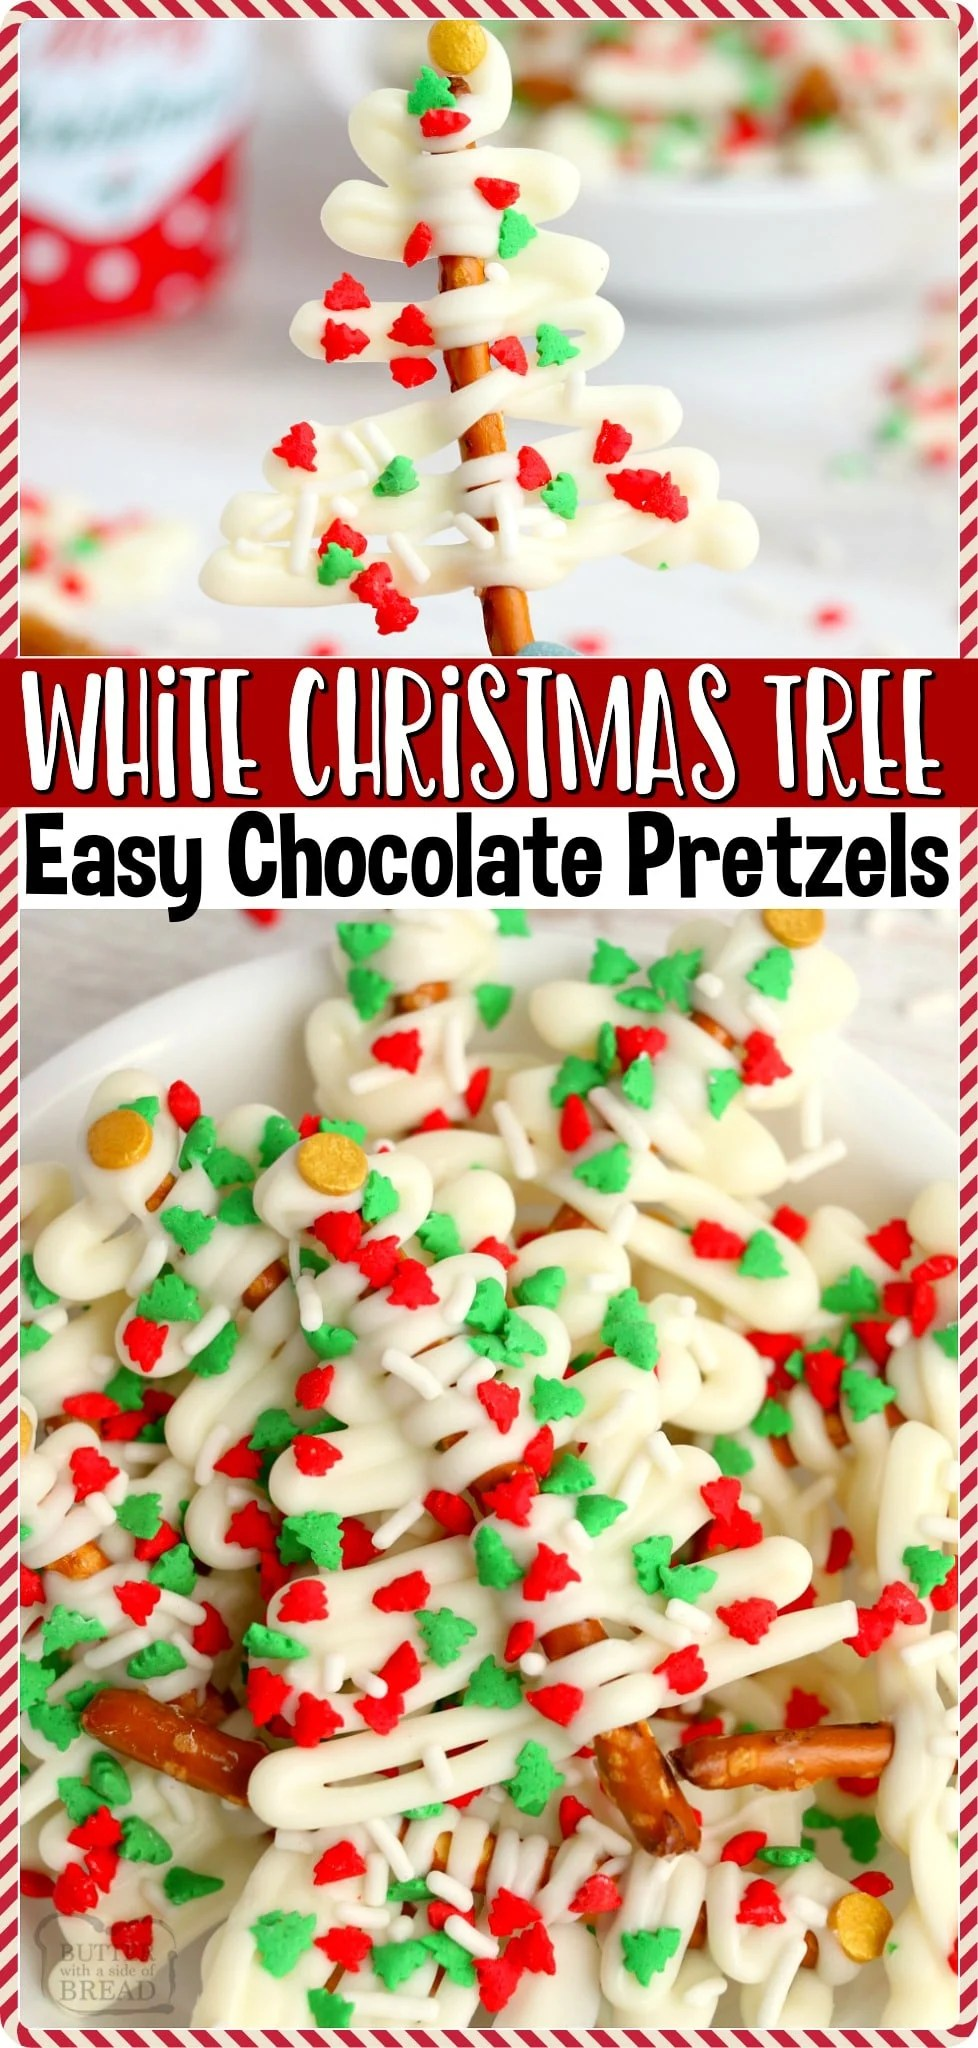 White Christmas Tree Pretzelsmade with 3 simple ingredients in minutes! Easy, festive white chocolate dessert for cookie trays and Christmas gifts! #Christmas #tree #pretzels #whitechocolate #easyrecipe from BUTTER WITH A SIDE OF BREAD